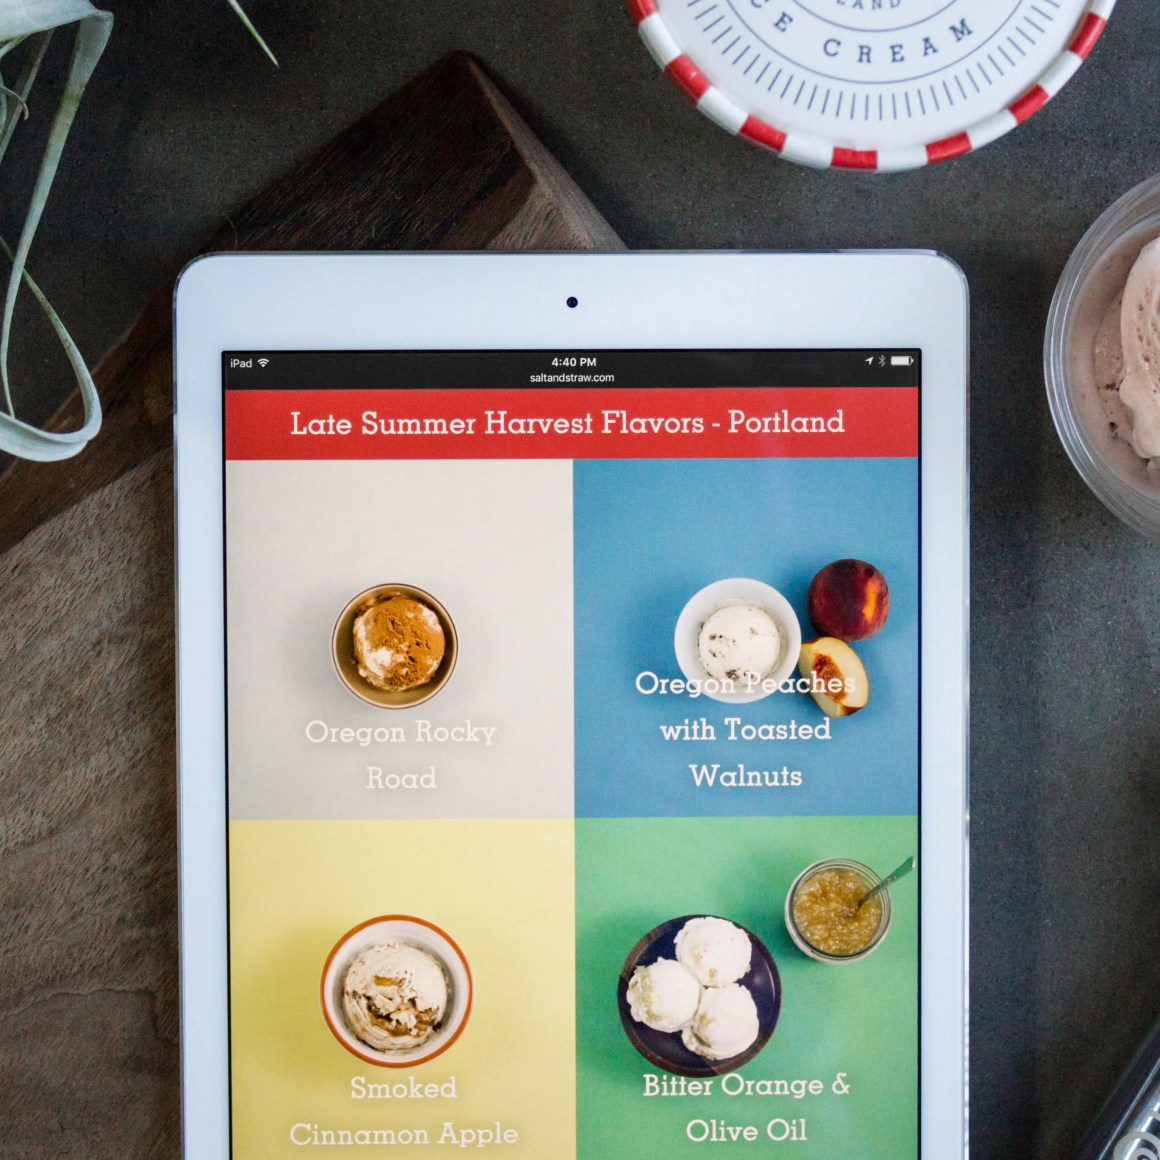 Salt & Straw flavors on iPad